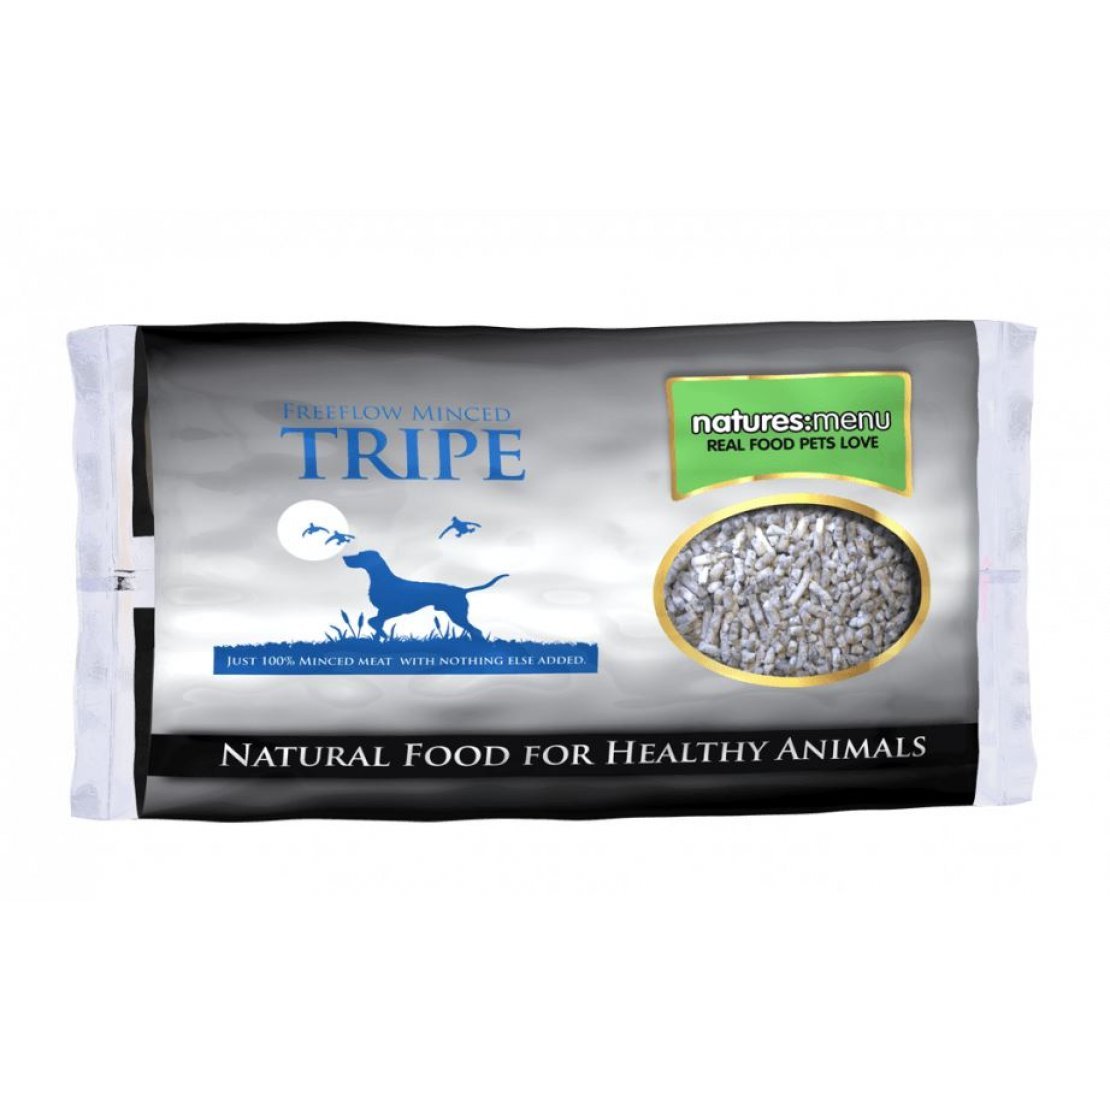 ONLY AVAILABLE FOR LOCAL DELIVERY. Natures Menu Frozen Dog Food. Freeflow Tripe